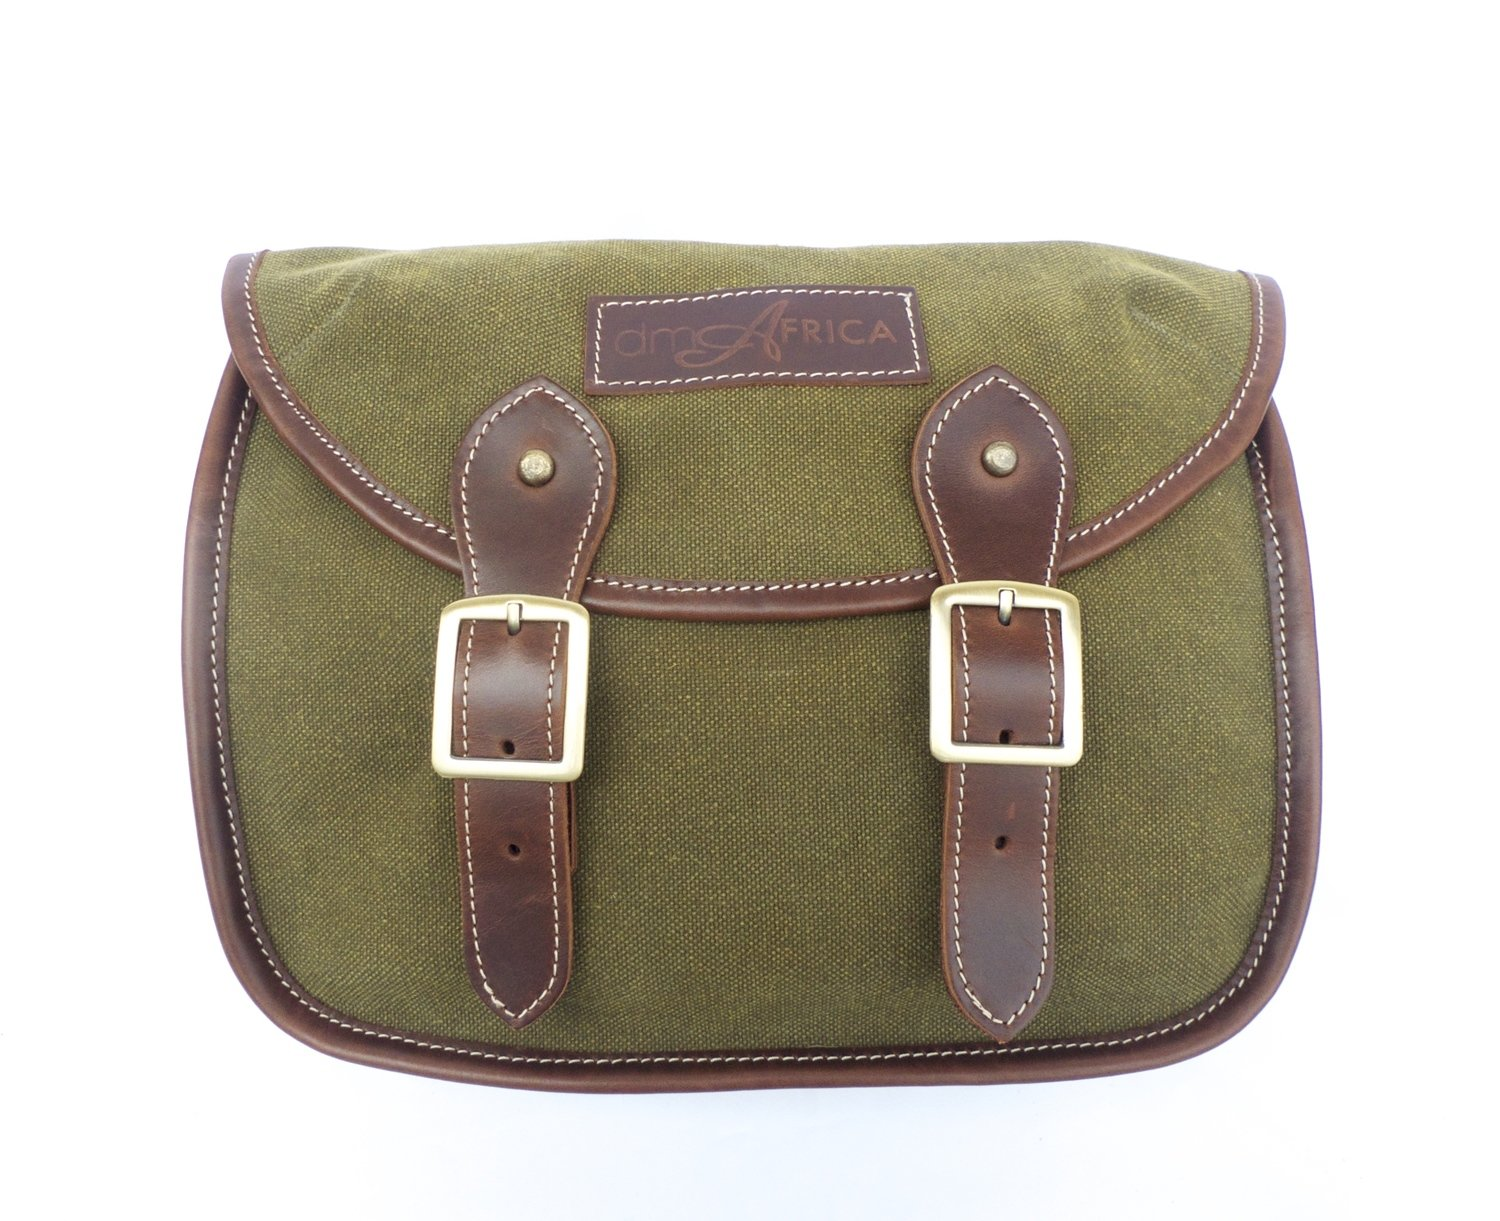 dmAfrica canvas and leather camera bag (olive)